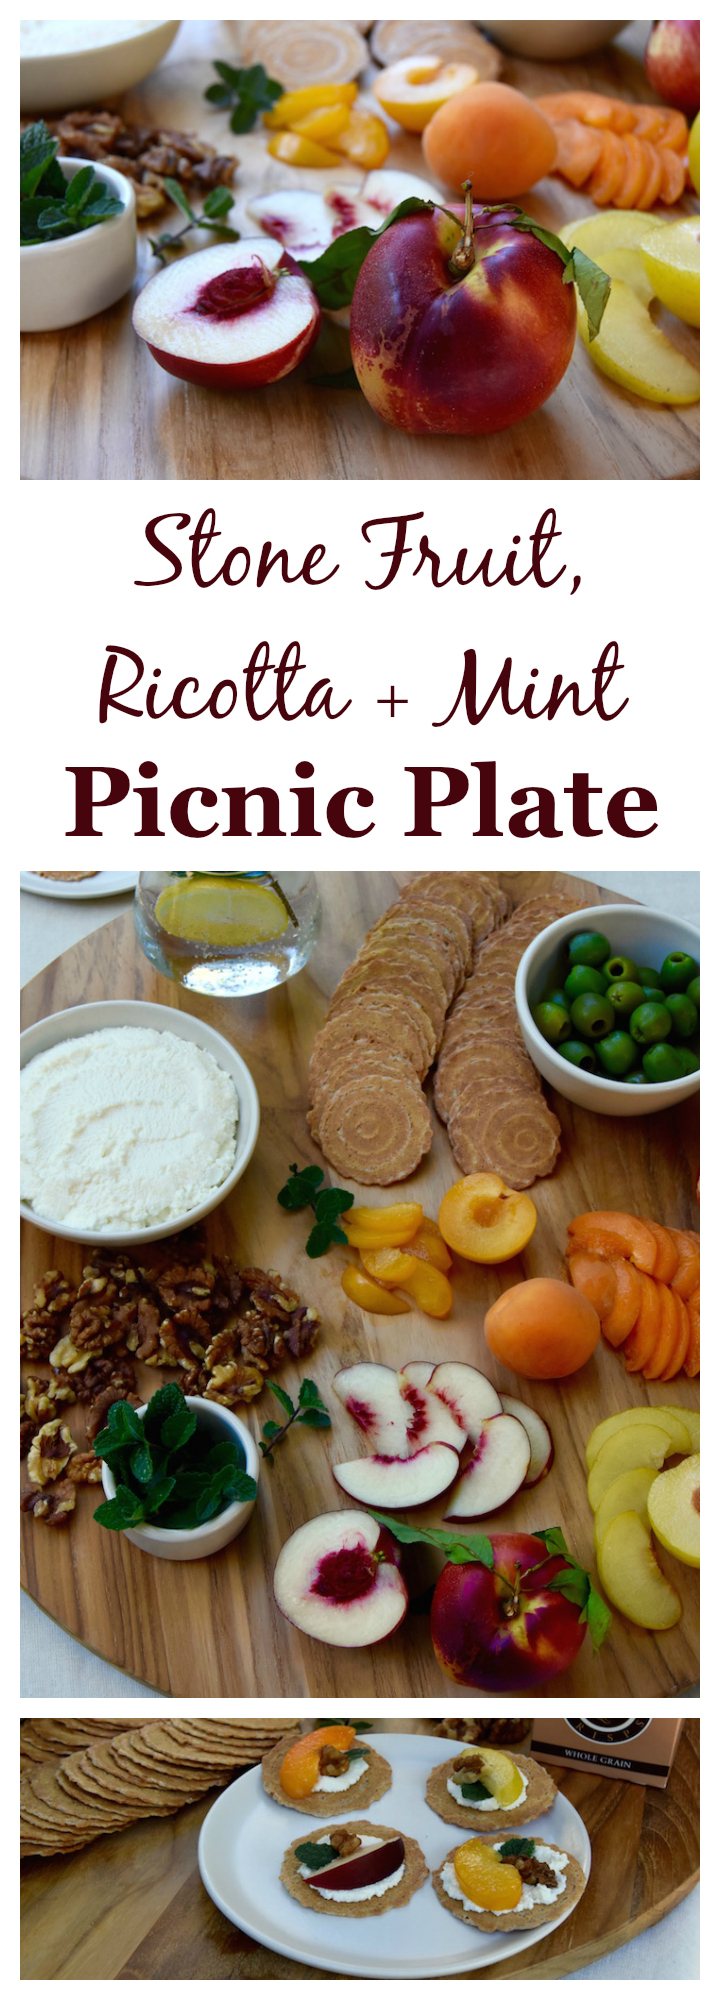 A simple combination of summer flavors, this Stone Fruit, Ricotta and Mint Picnic Plate is perfect for get togethers this summer. | uprootkitchen.com